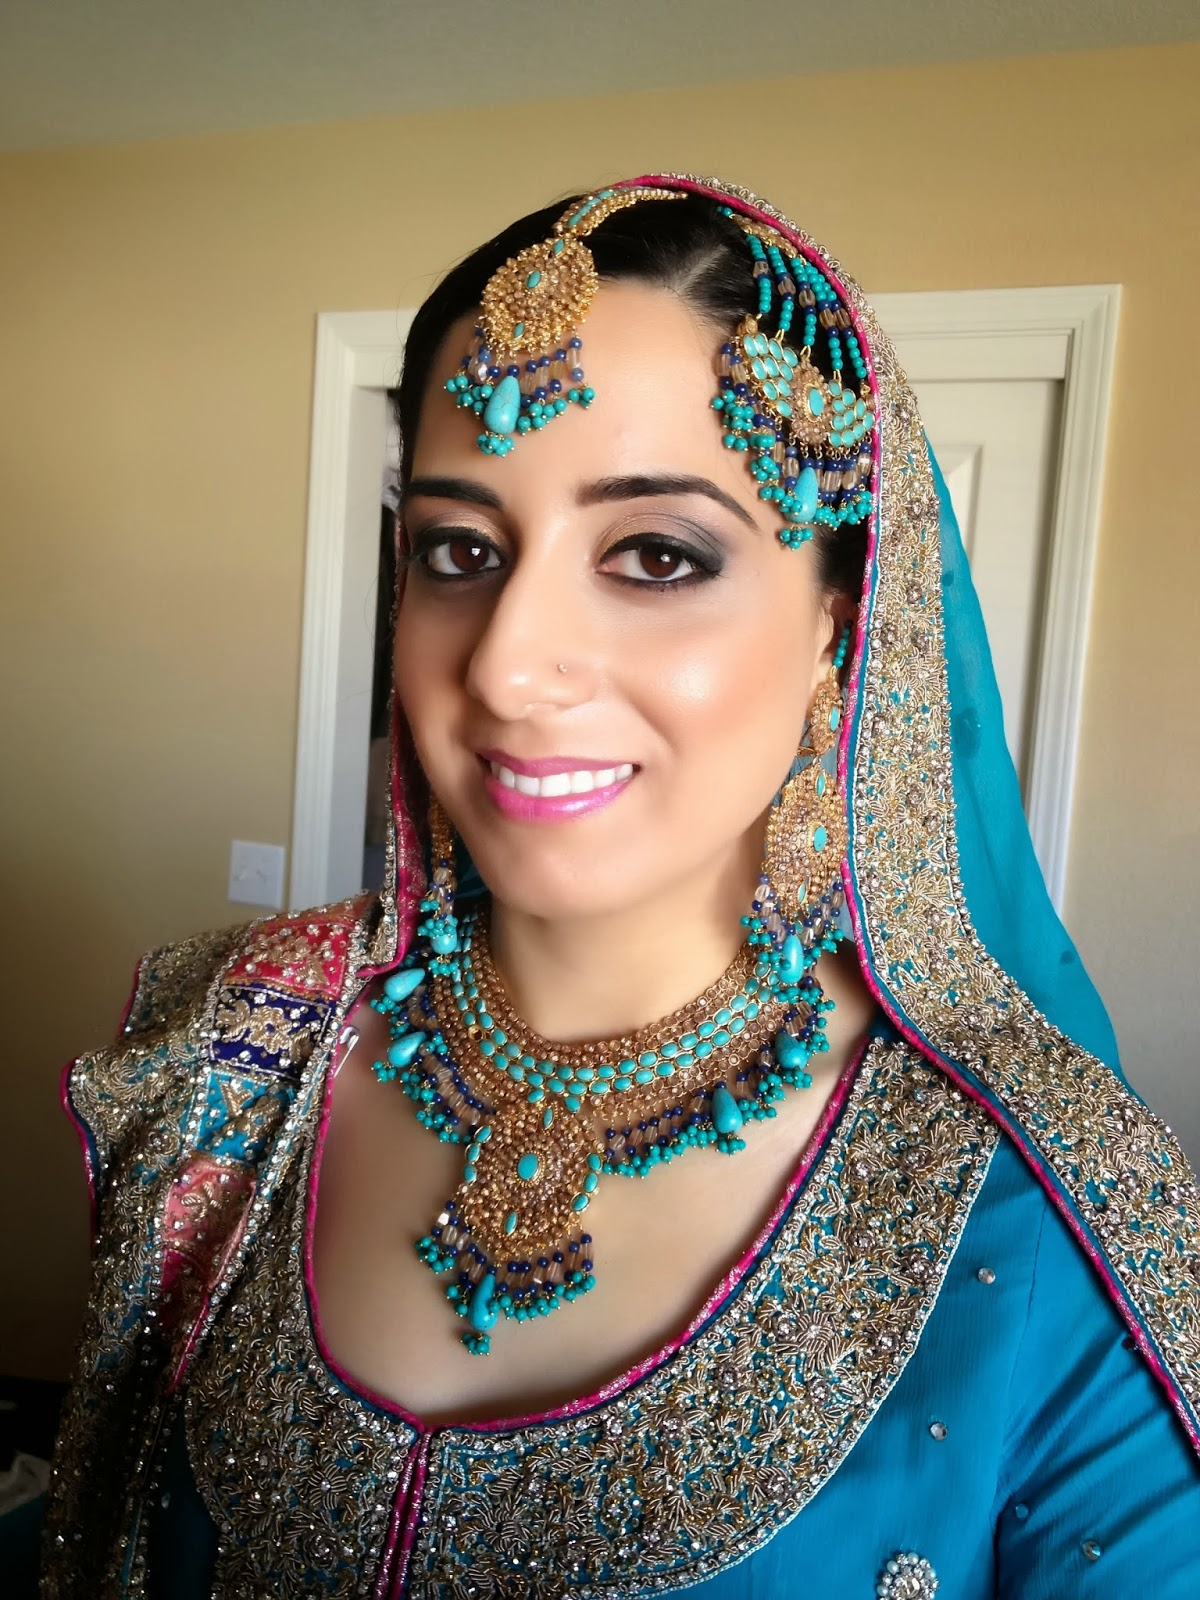 bella airbrush makeup & hair design: pakistani bridal makeup